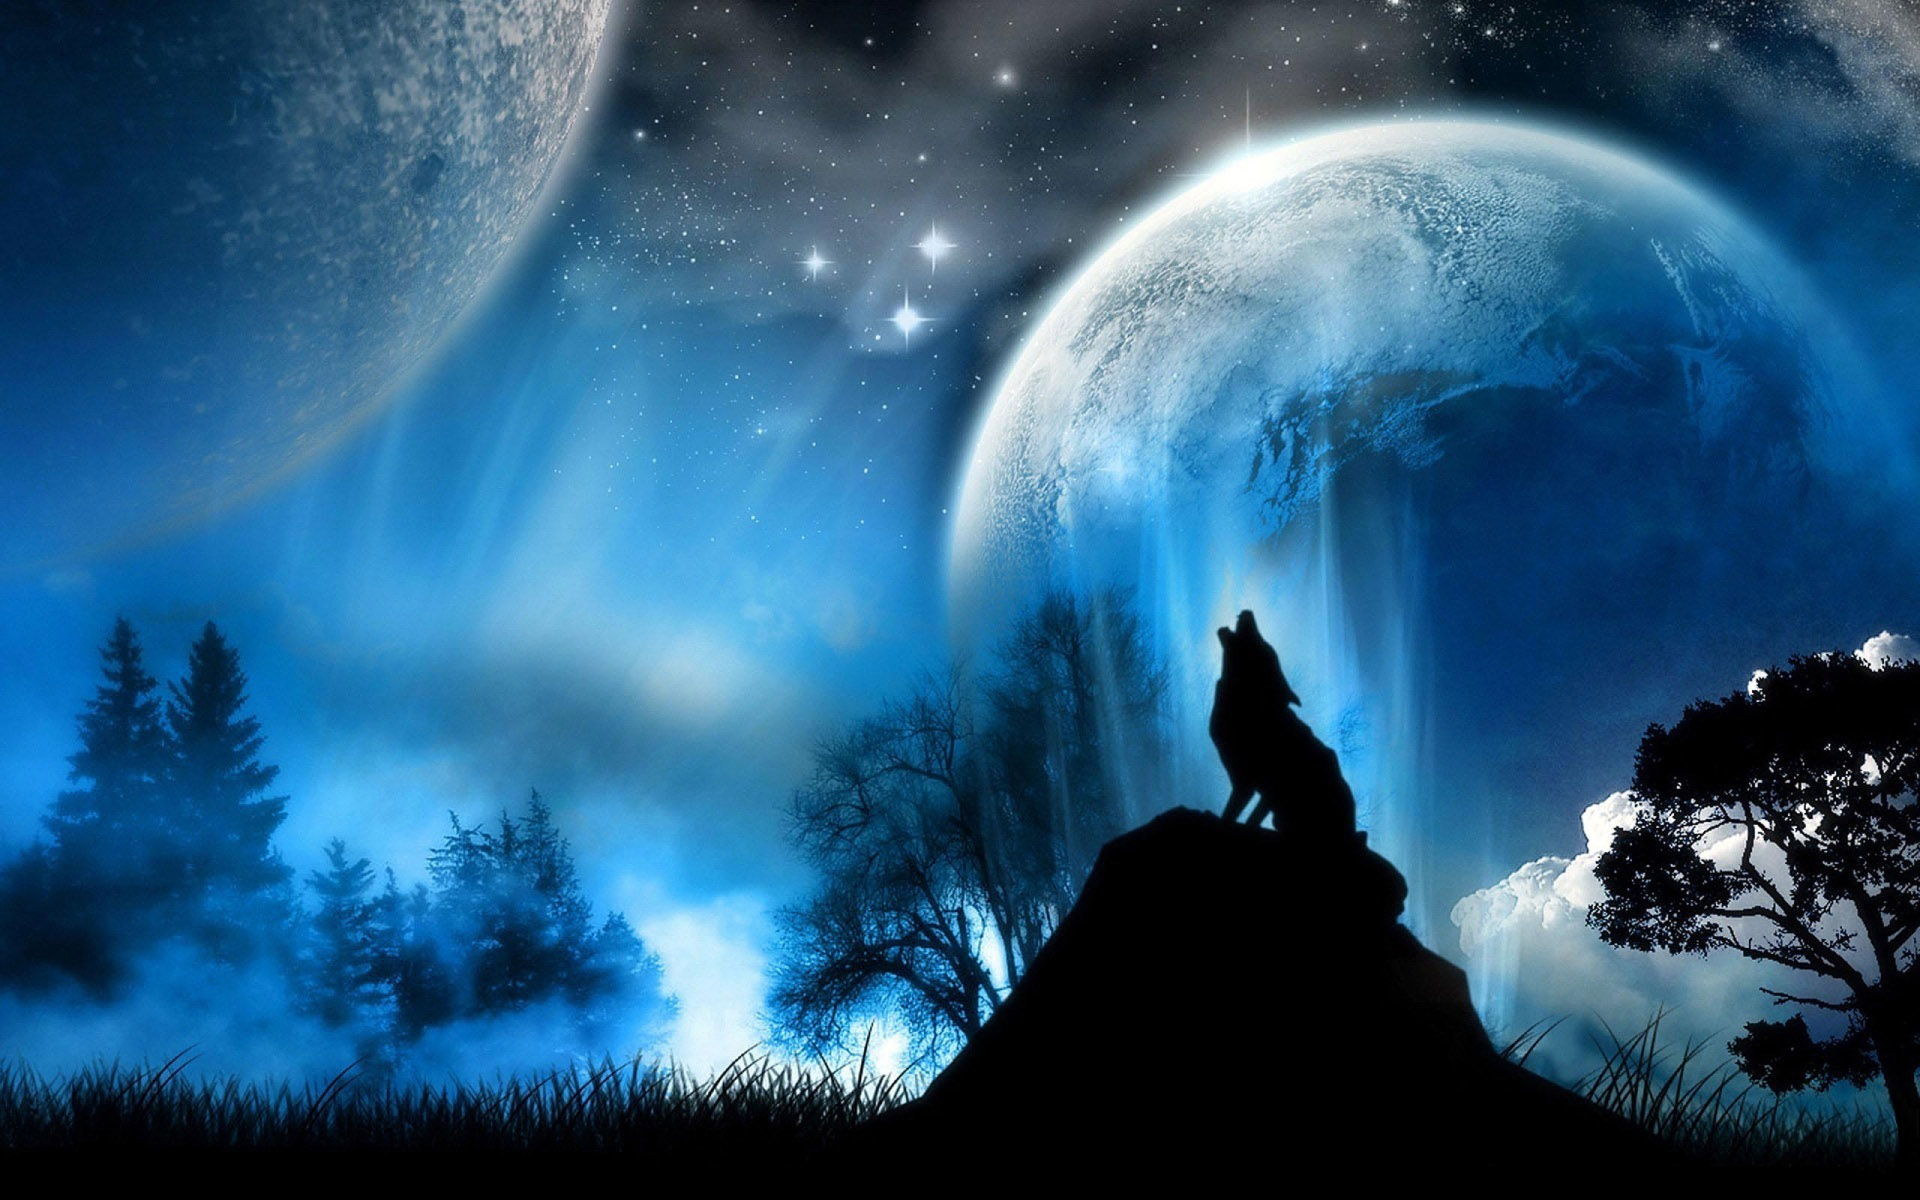 download wolf and moon wallpaper pictures in high definition or